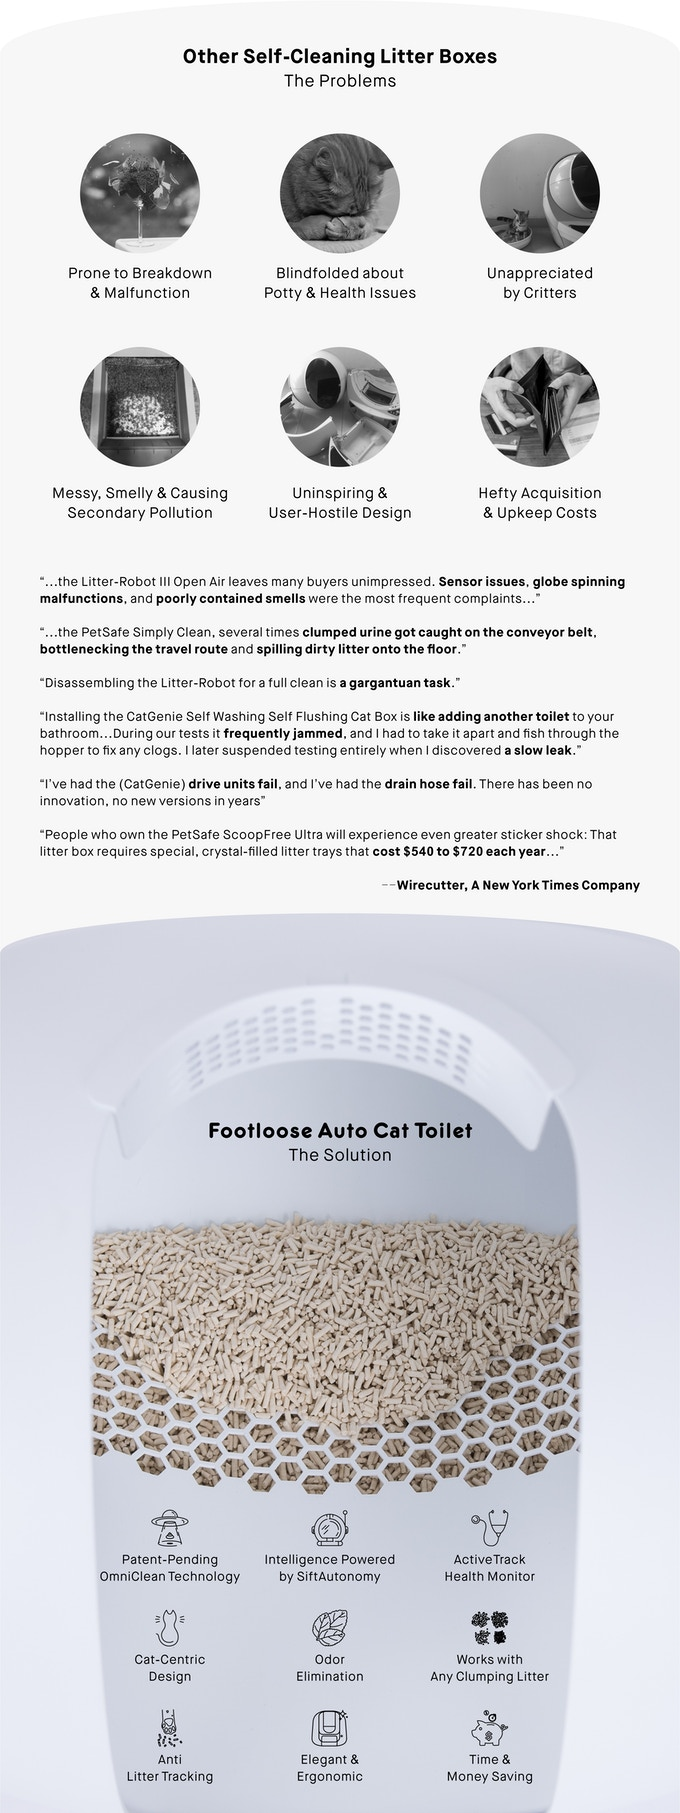 Footloose: Next-Gen Automatic & Health-Tracking Cat Potty by Petato